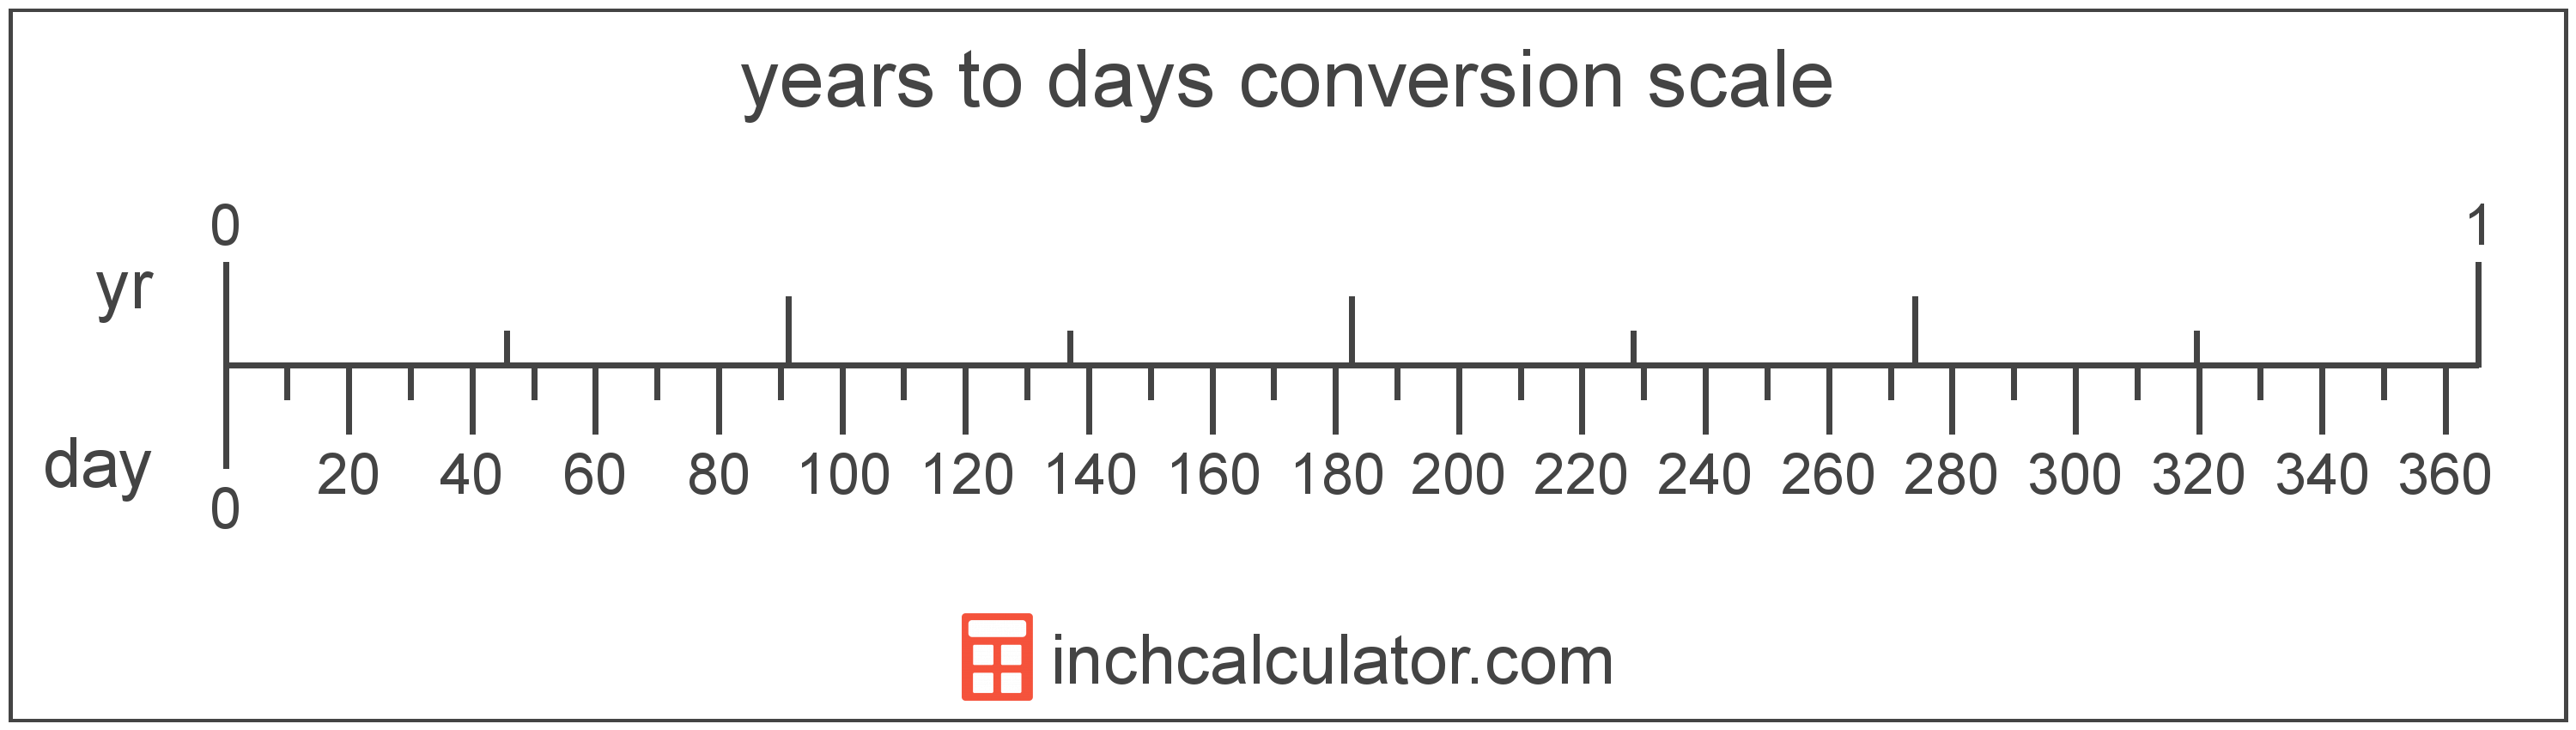 conversion scale showing years and equivalent days time values